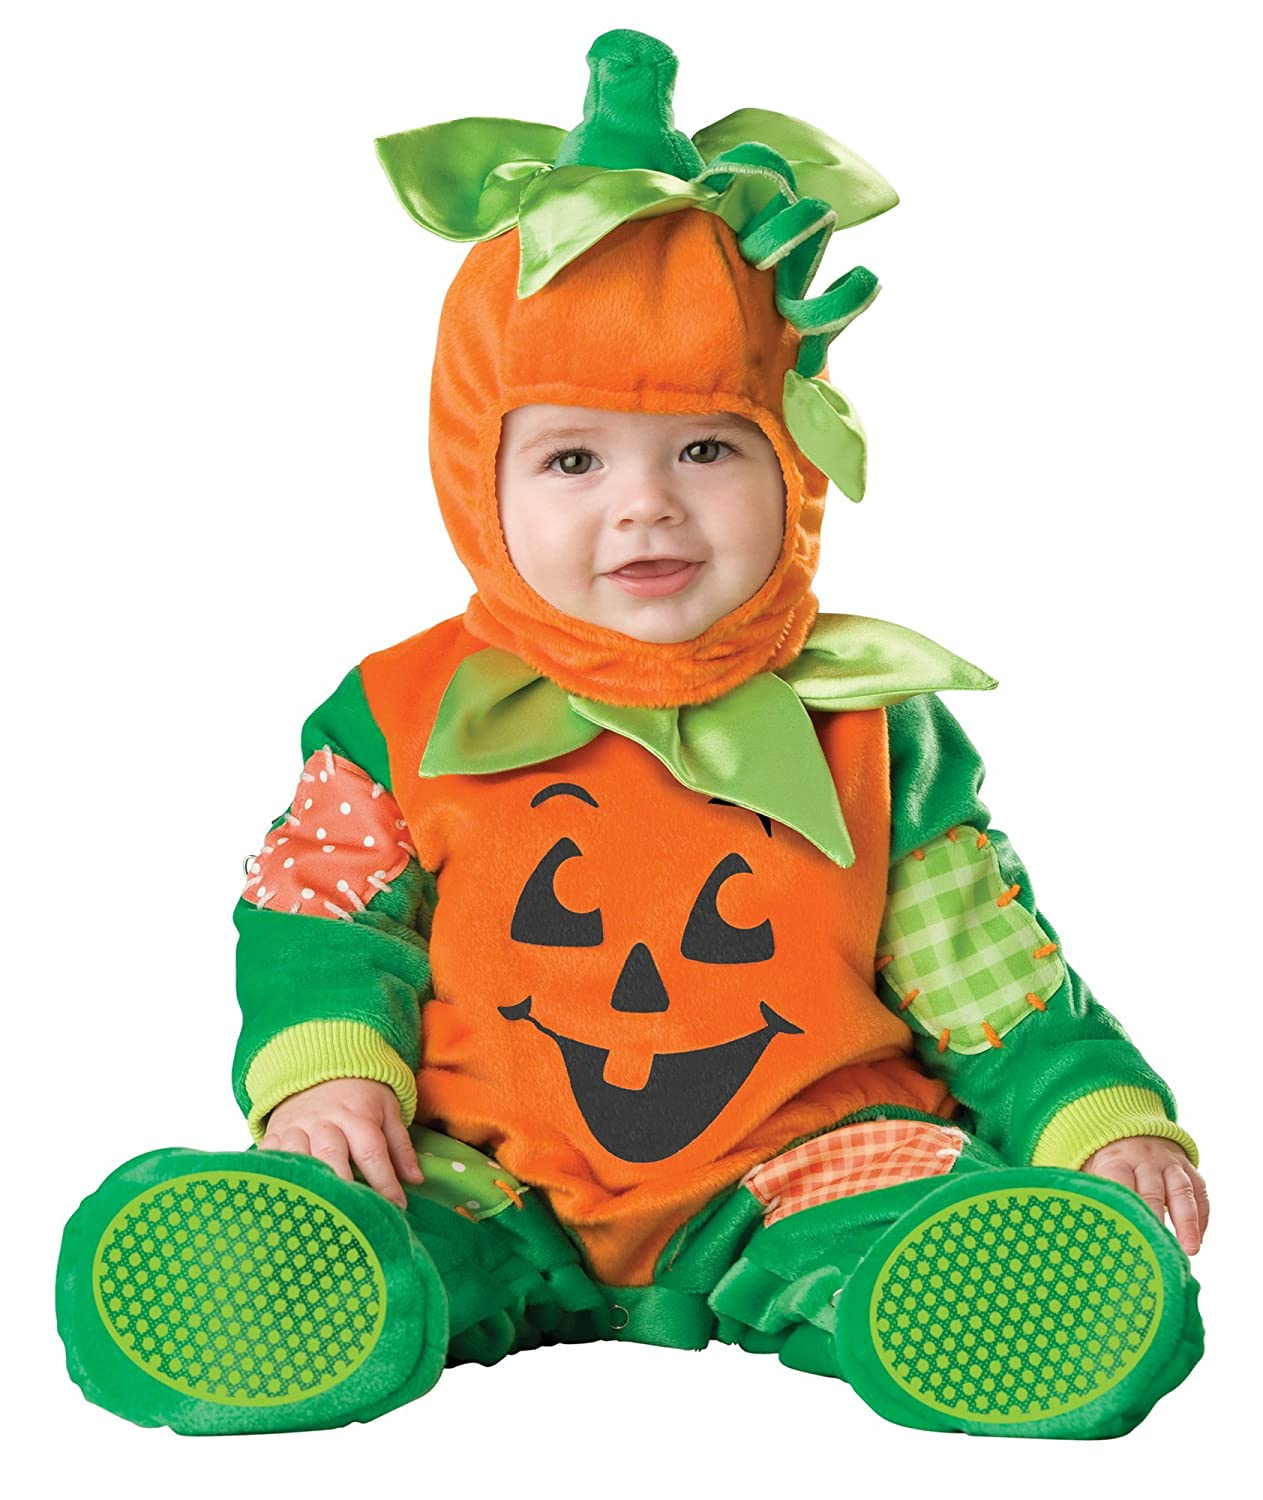 Pumpkin Patch Infant Costume  sc 1 st  DiscoveryHub.net & Newborn Halloween Costume Ideas